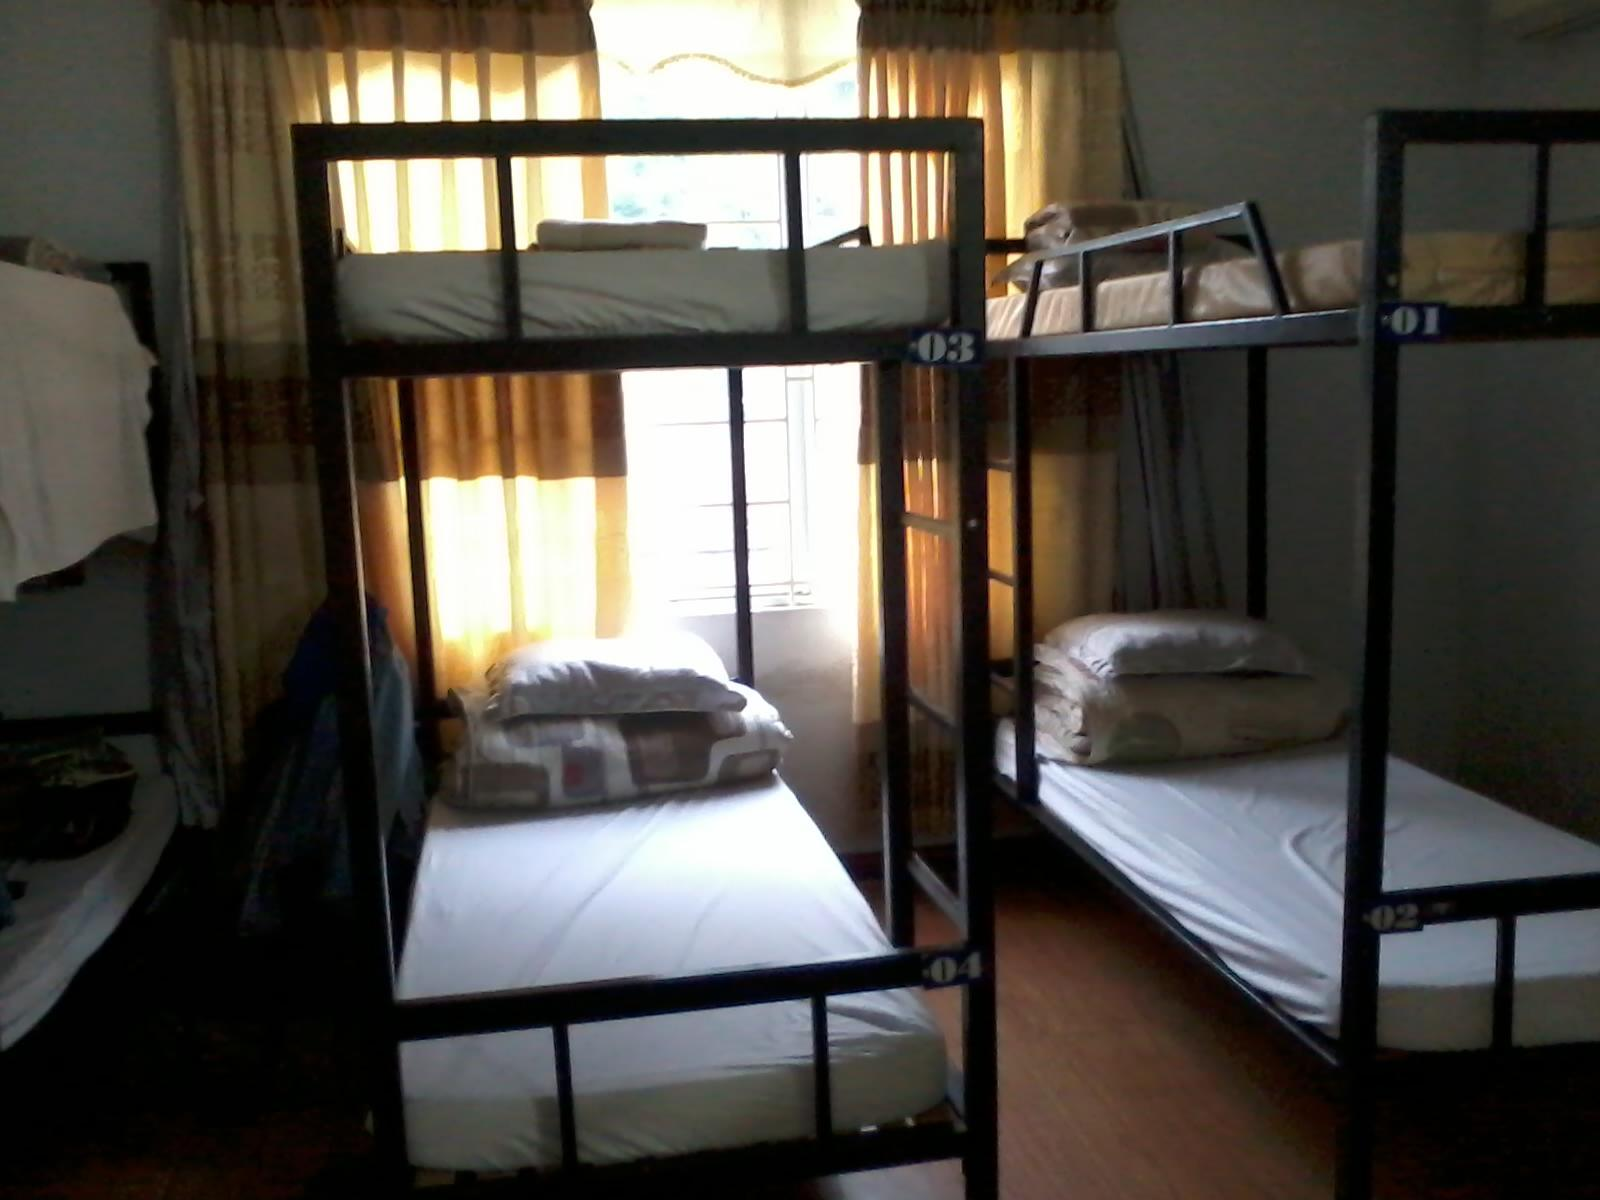 1 Bed in 12-Bed Dormitory